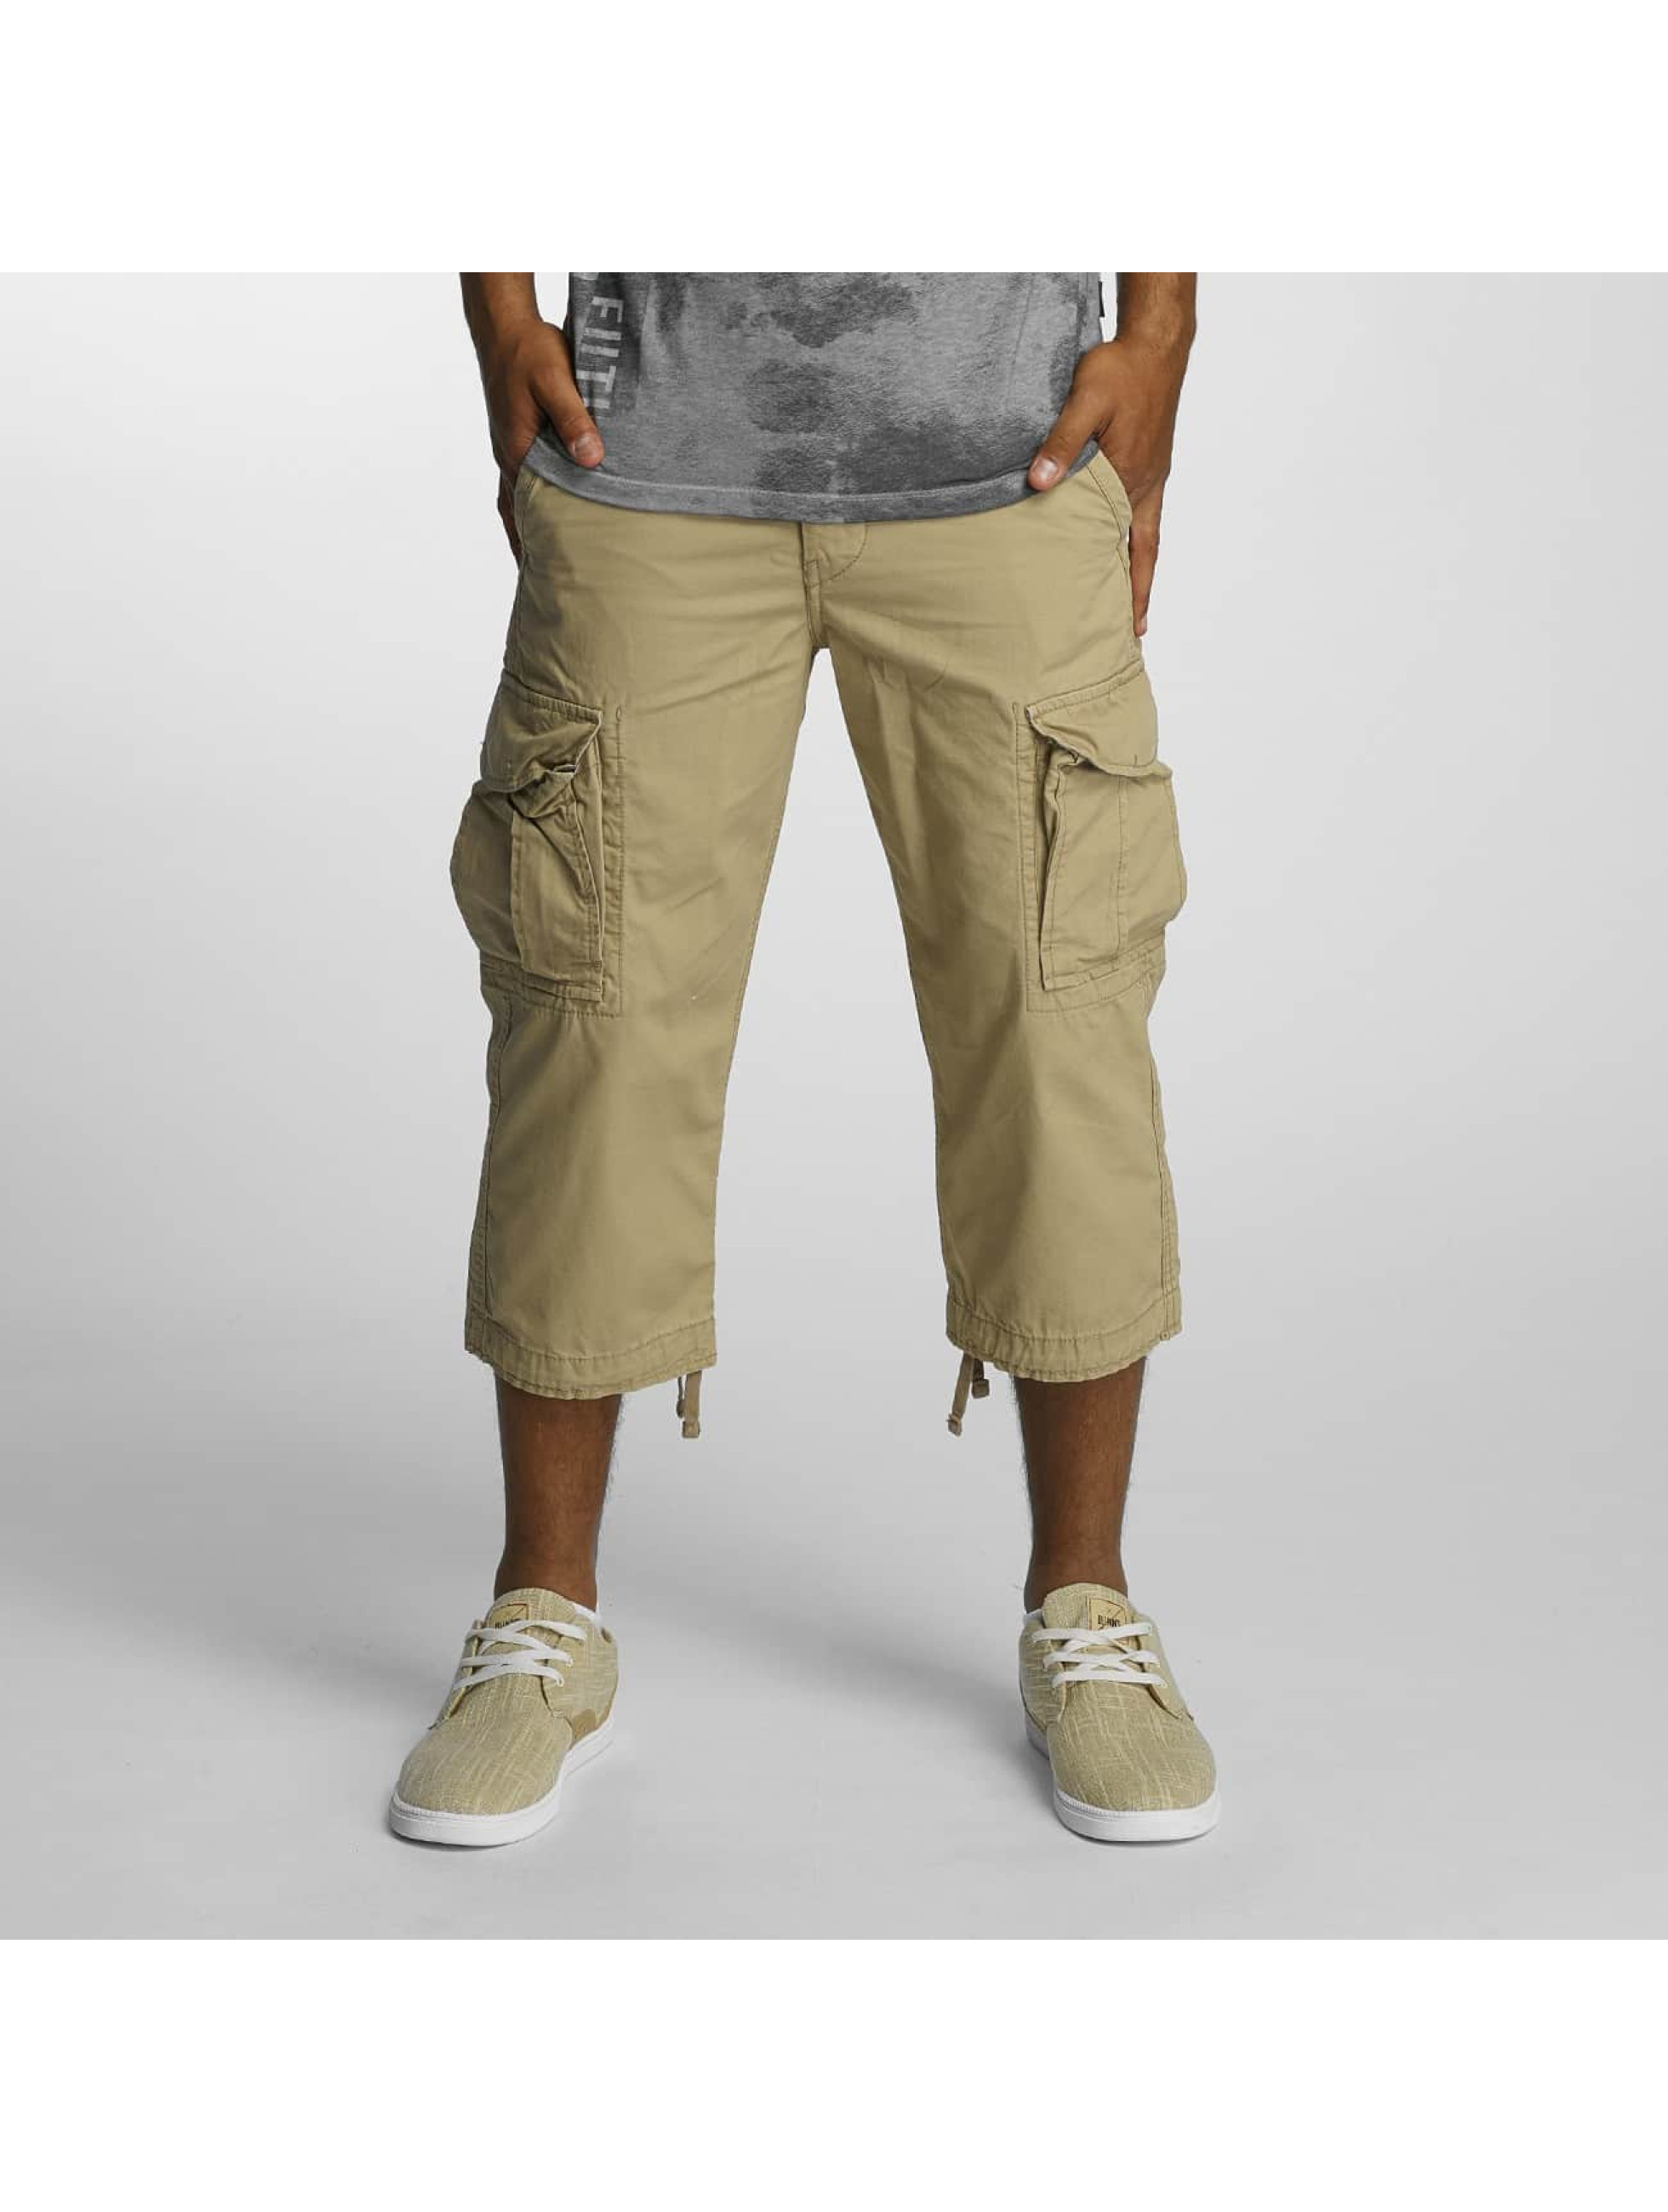 Jack & Jones Szorty jjiPreston bezowy